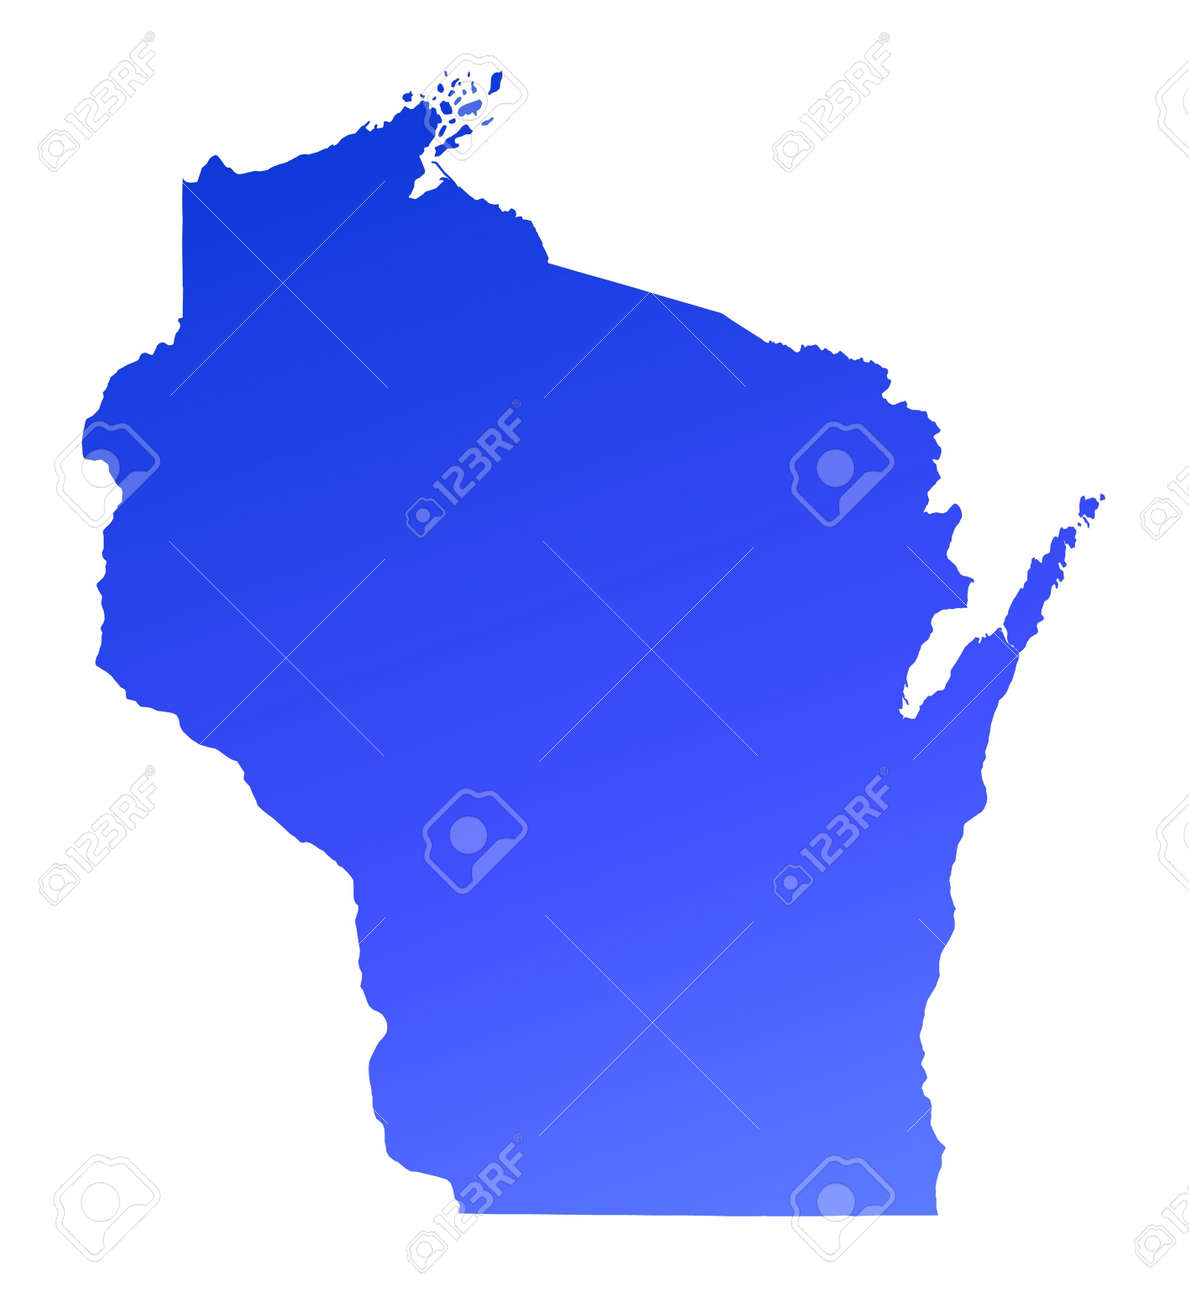 Blue Gradient Wisconsin Map USA Detailed Mercator Projection - Wisconsin on map of usa